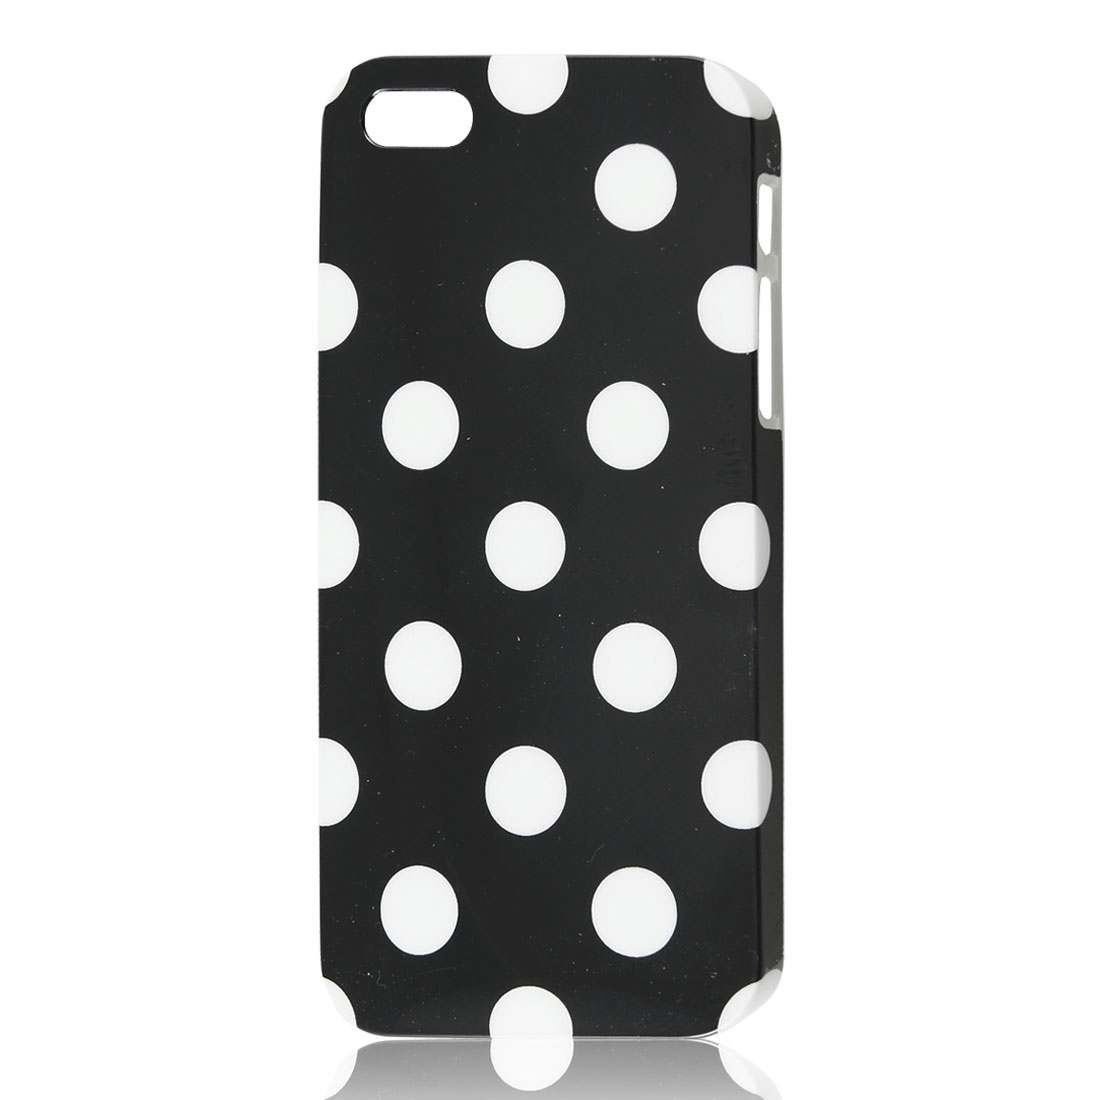 White Polka Dots Pattern Black Hard Skin Case Cover for iPhone 5 5G